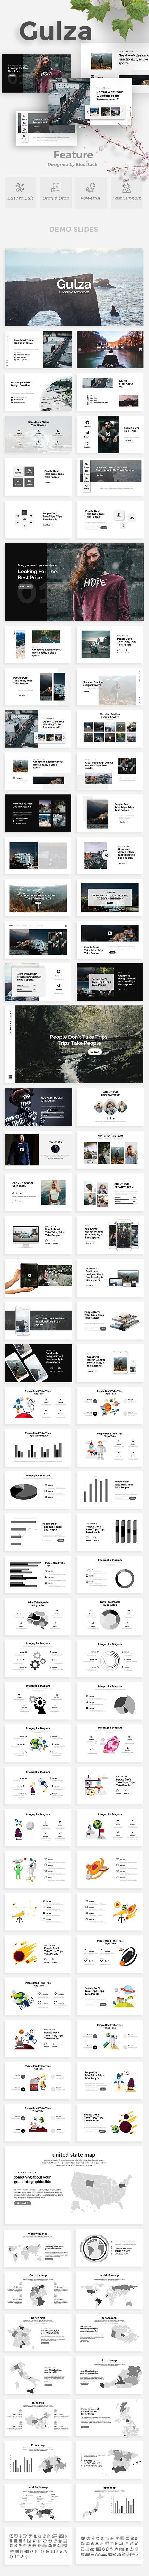 Gulza Creative Google Slide Template - Google Slides Presentation Templates